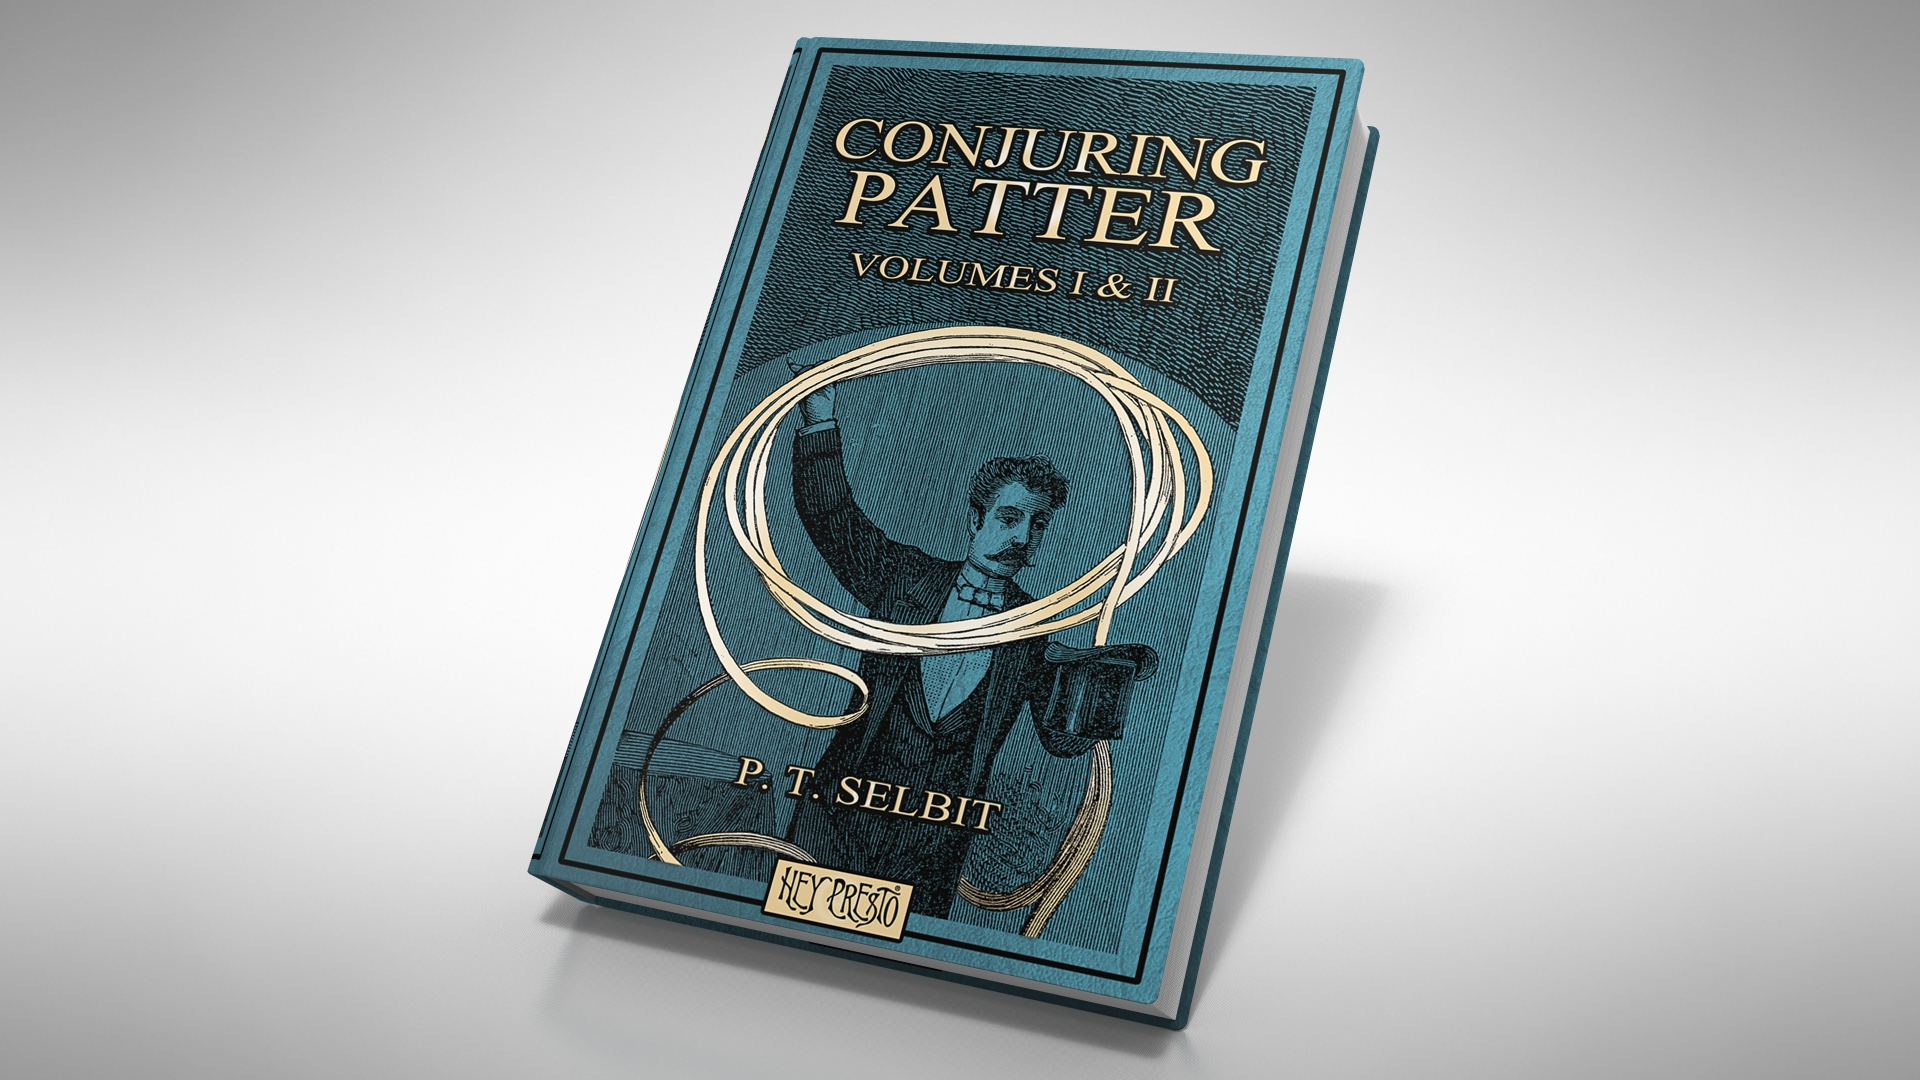 Conjuring Patter by P.T. Selbit